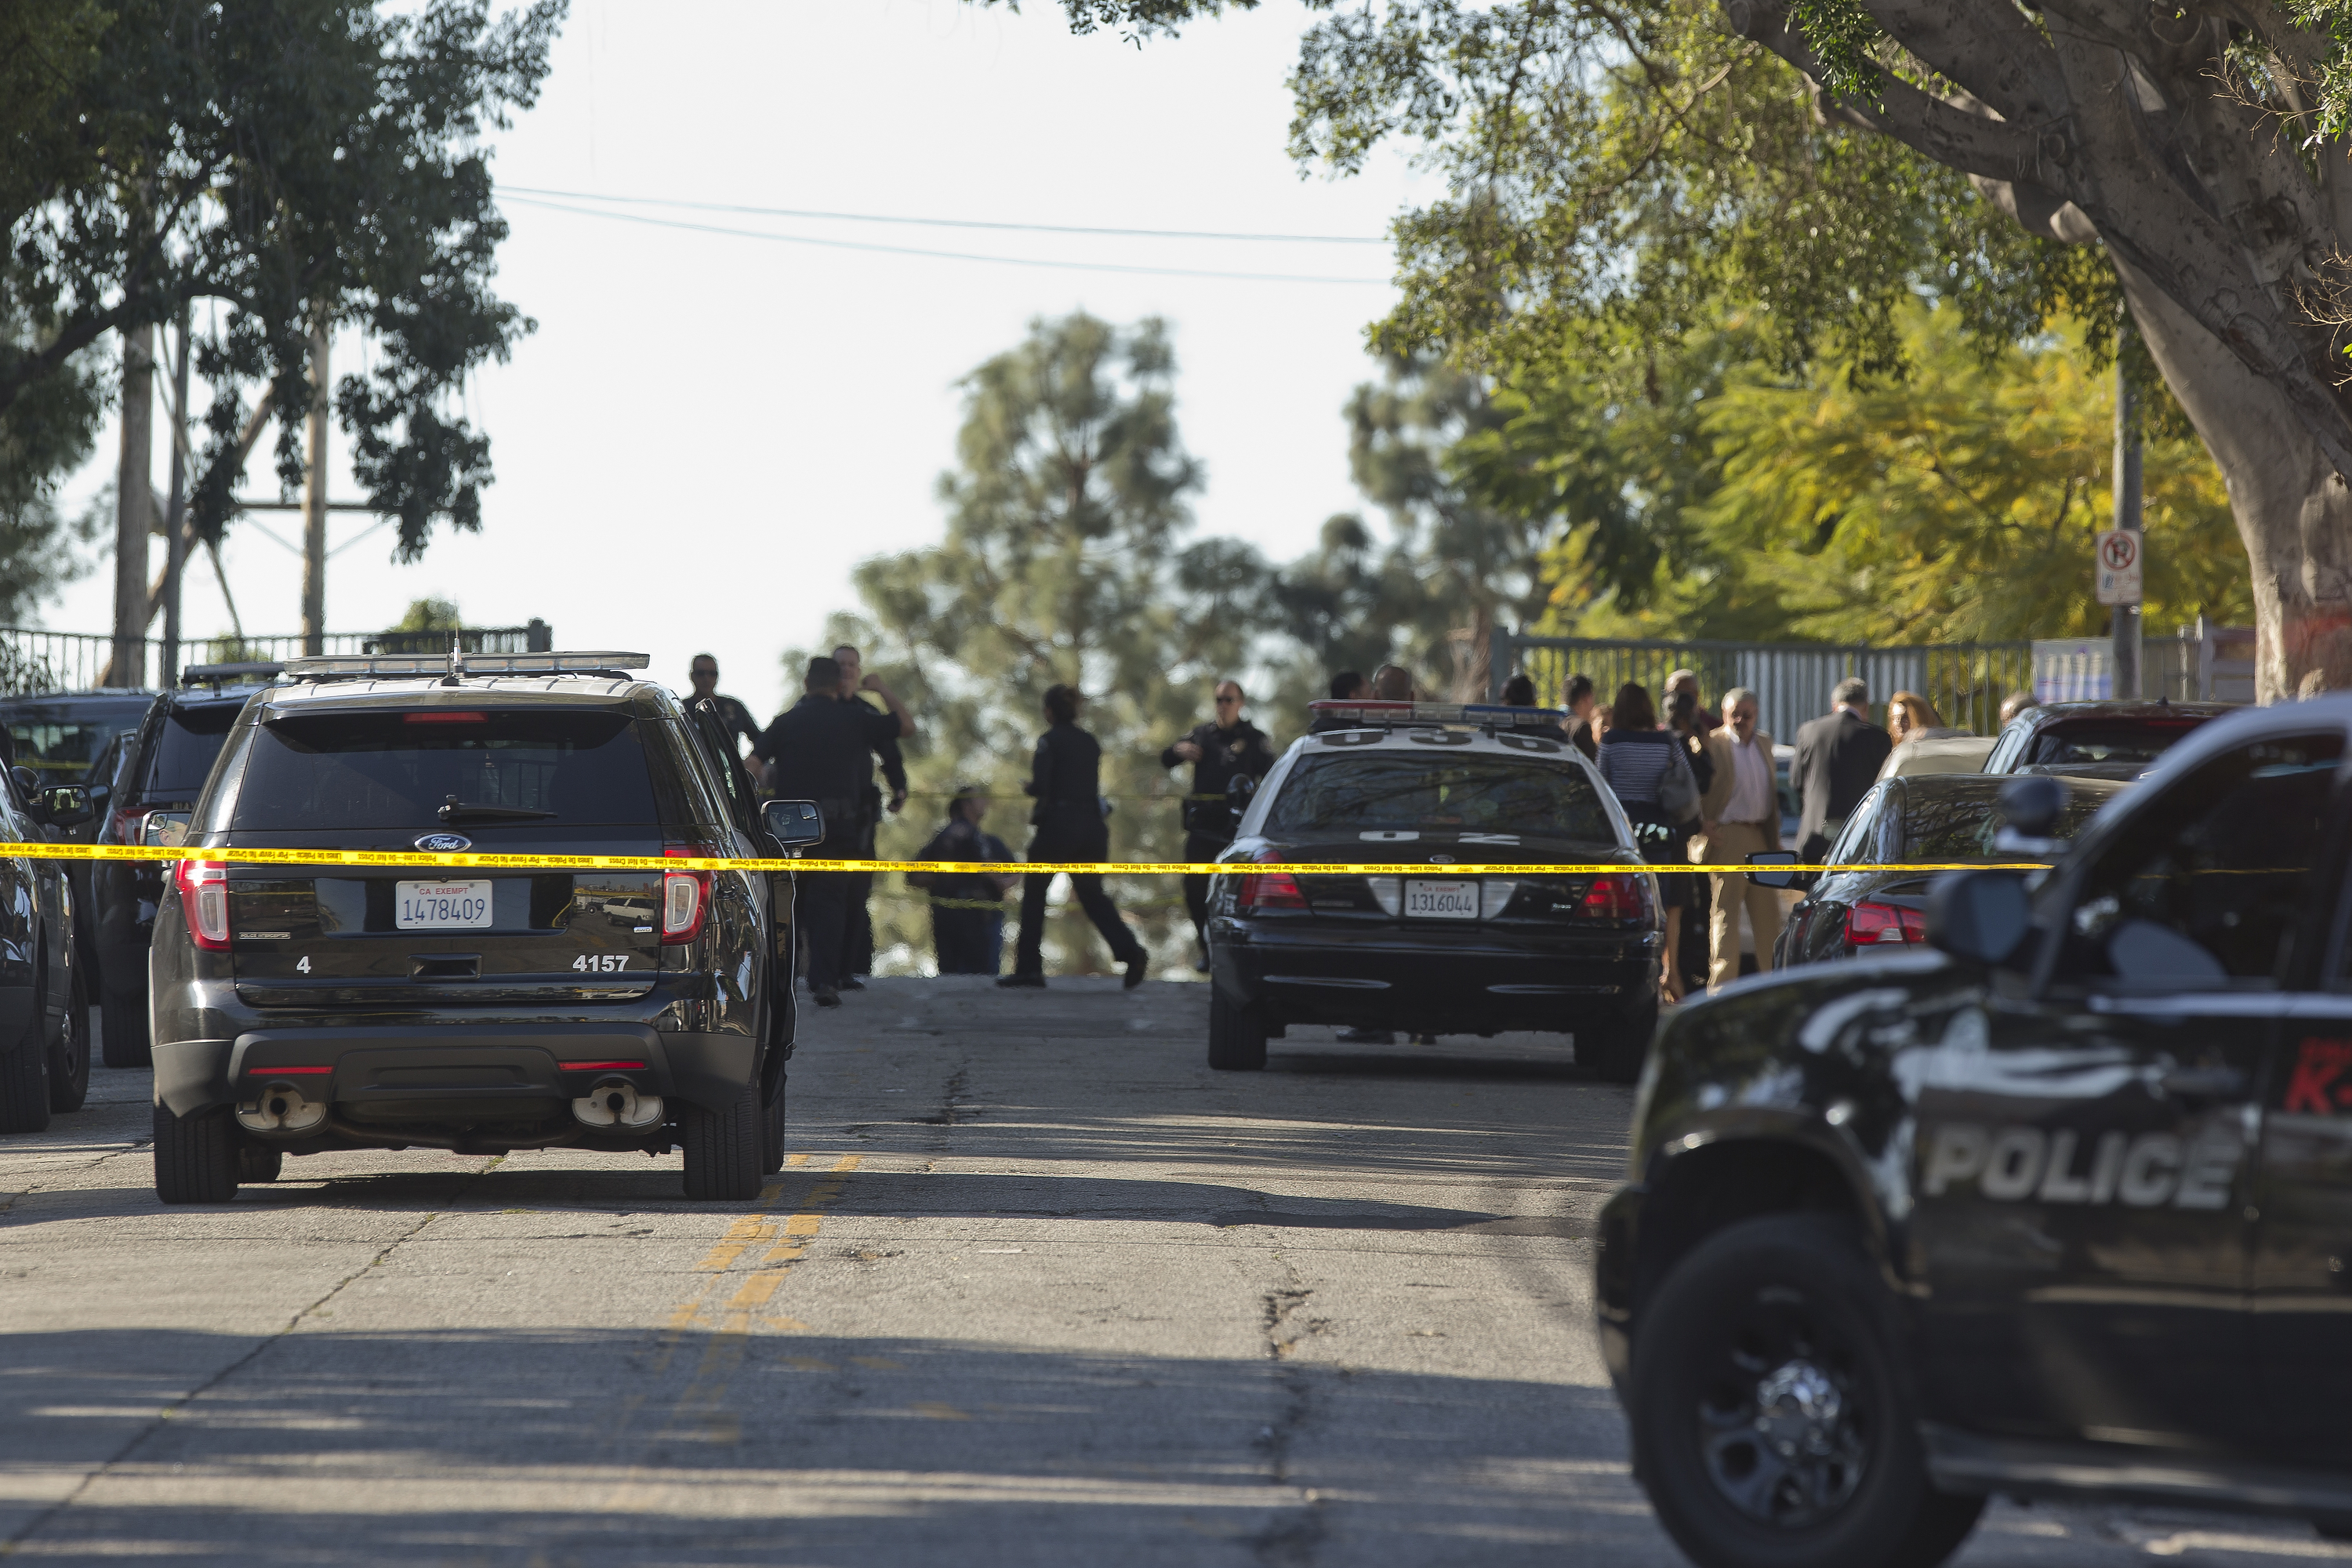 Los Angeles Policecordon off the Belmont High School in Los Angeles Thursday, Feb. 1, 2018. Two students were shot and wounded, one critically, inside a Los Angeles middle school classroom Thursday morning and police arrested a female student suspect, authorities said.  (AP Photo/Damian Dovarganes)